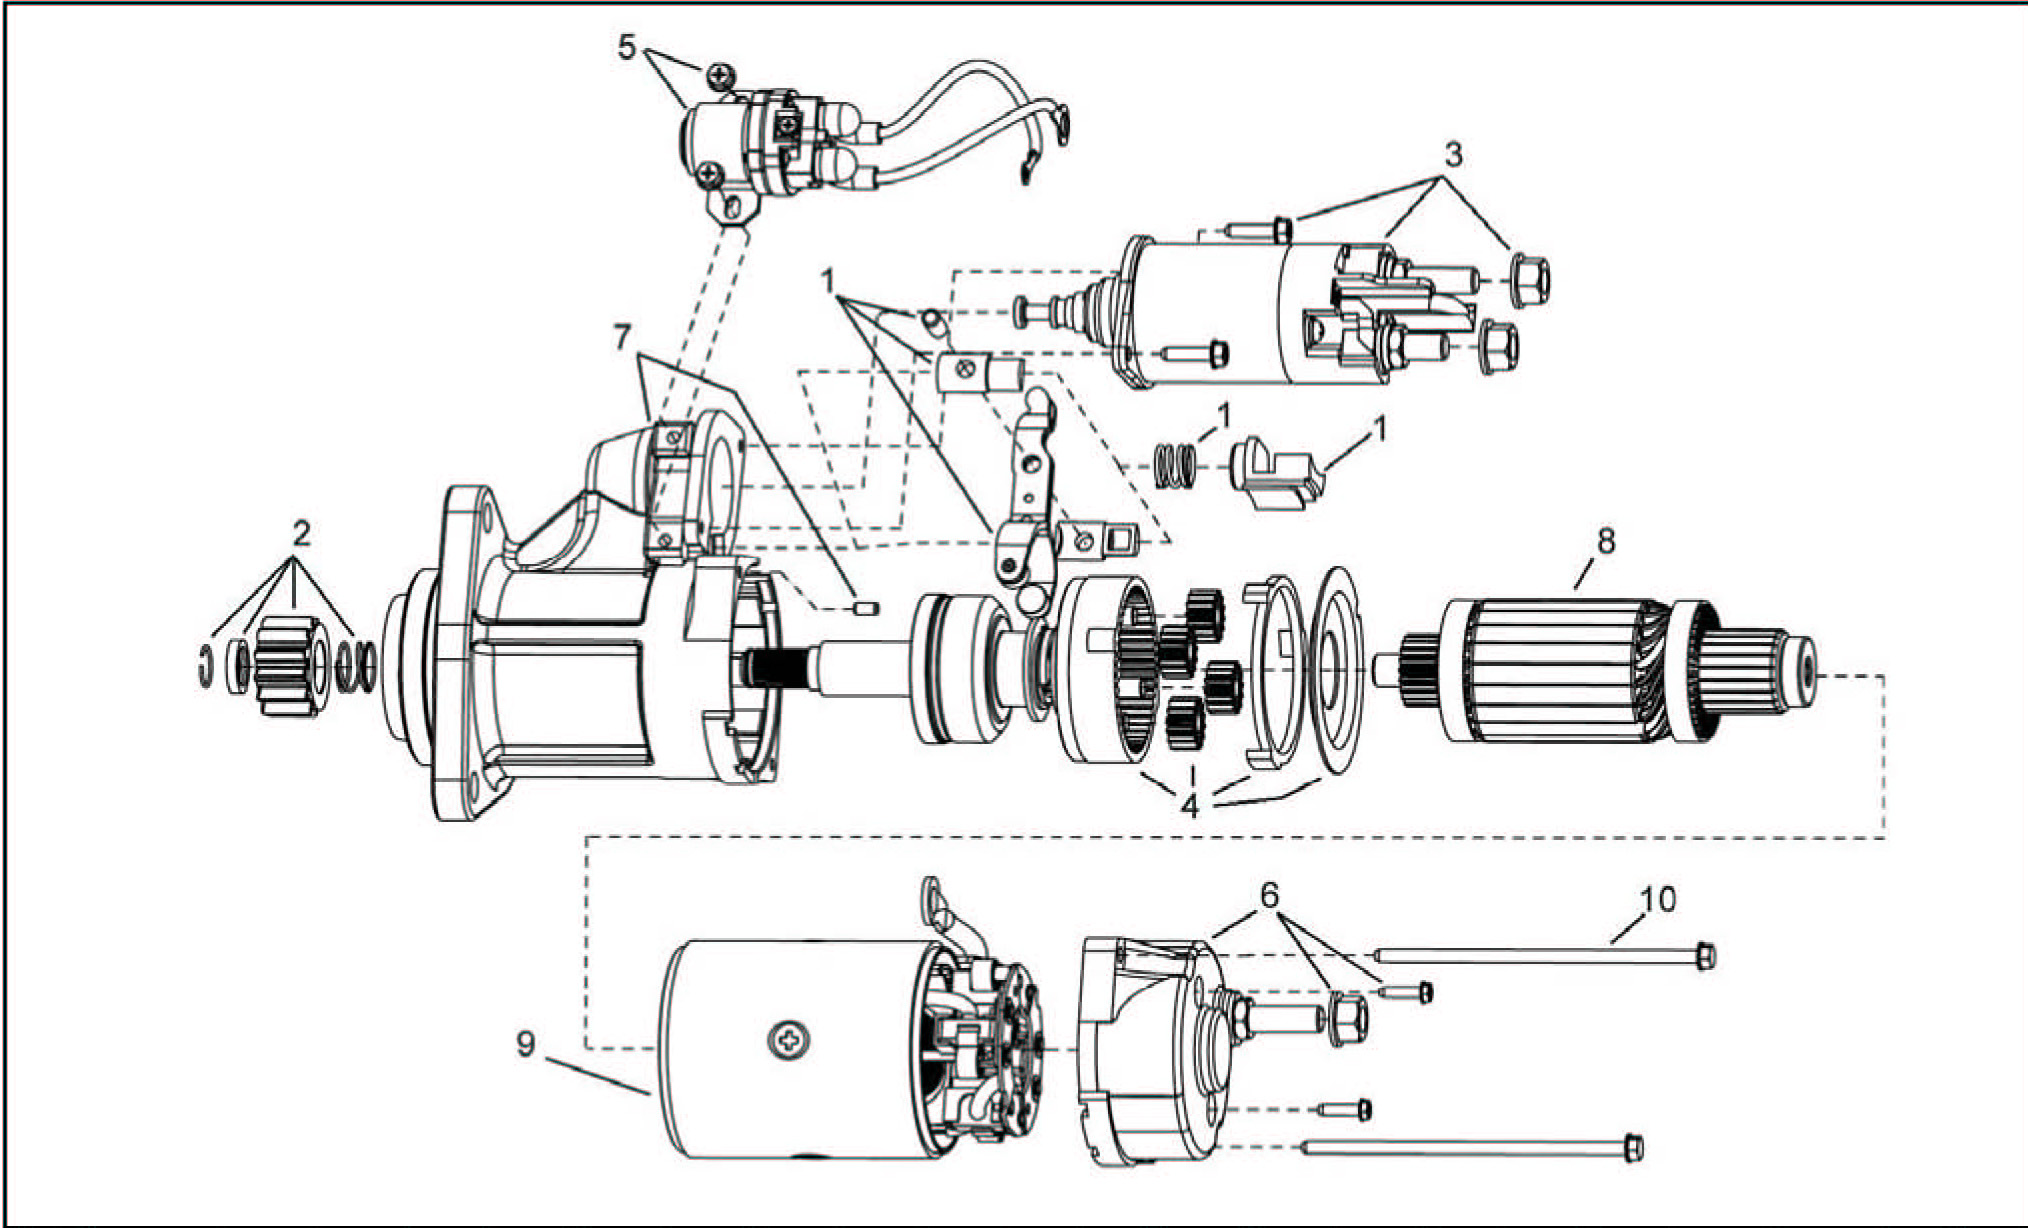 Somfy Motors Wiring Diagram likewise 42mt Delcoremy Startermotor together with 140 39149 in addition Exploded Views as well Starter Solenoid Wiring Diagram 2 Cycle Golf Cart. on delco 39mt